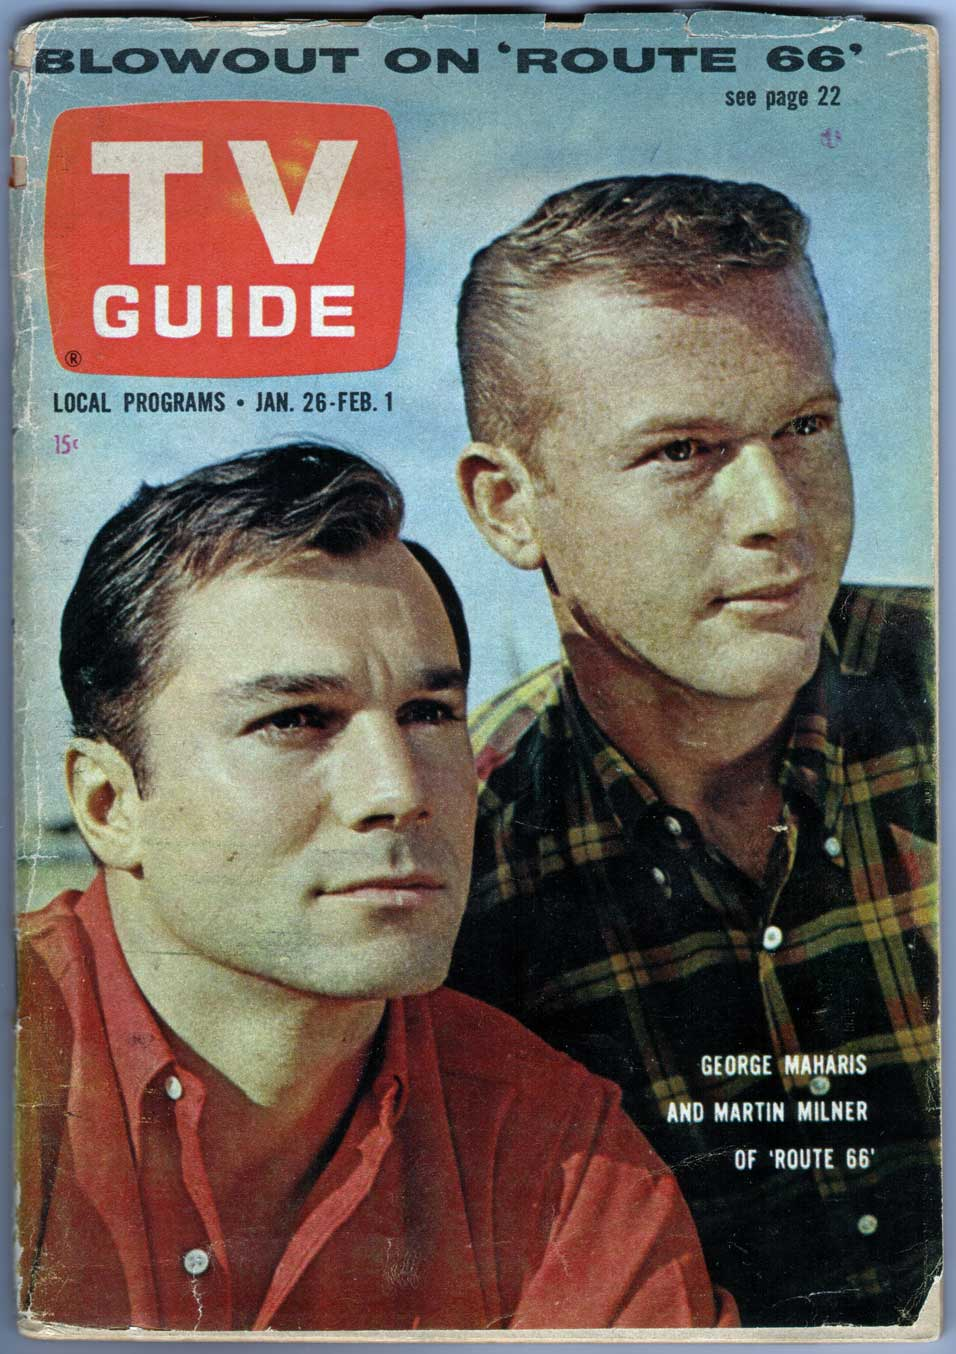 route 66 - tv guide - january 26, 1963